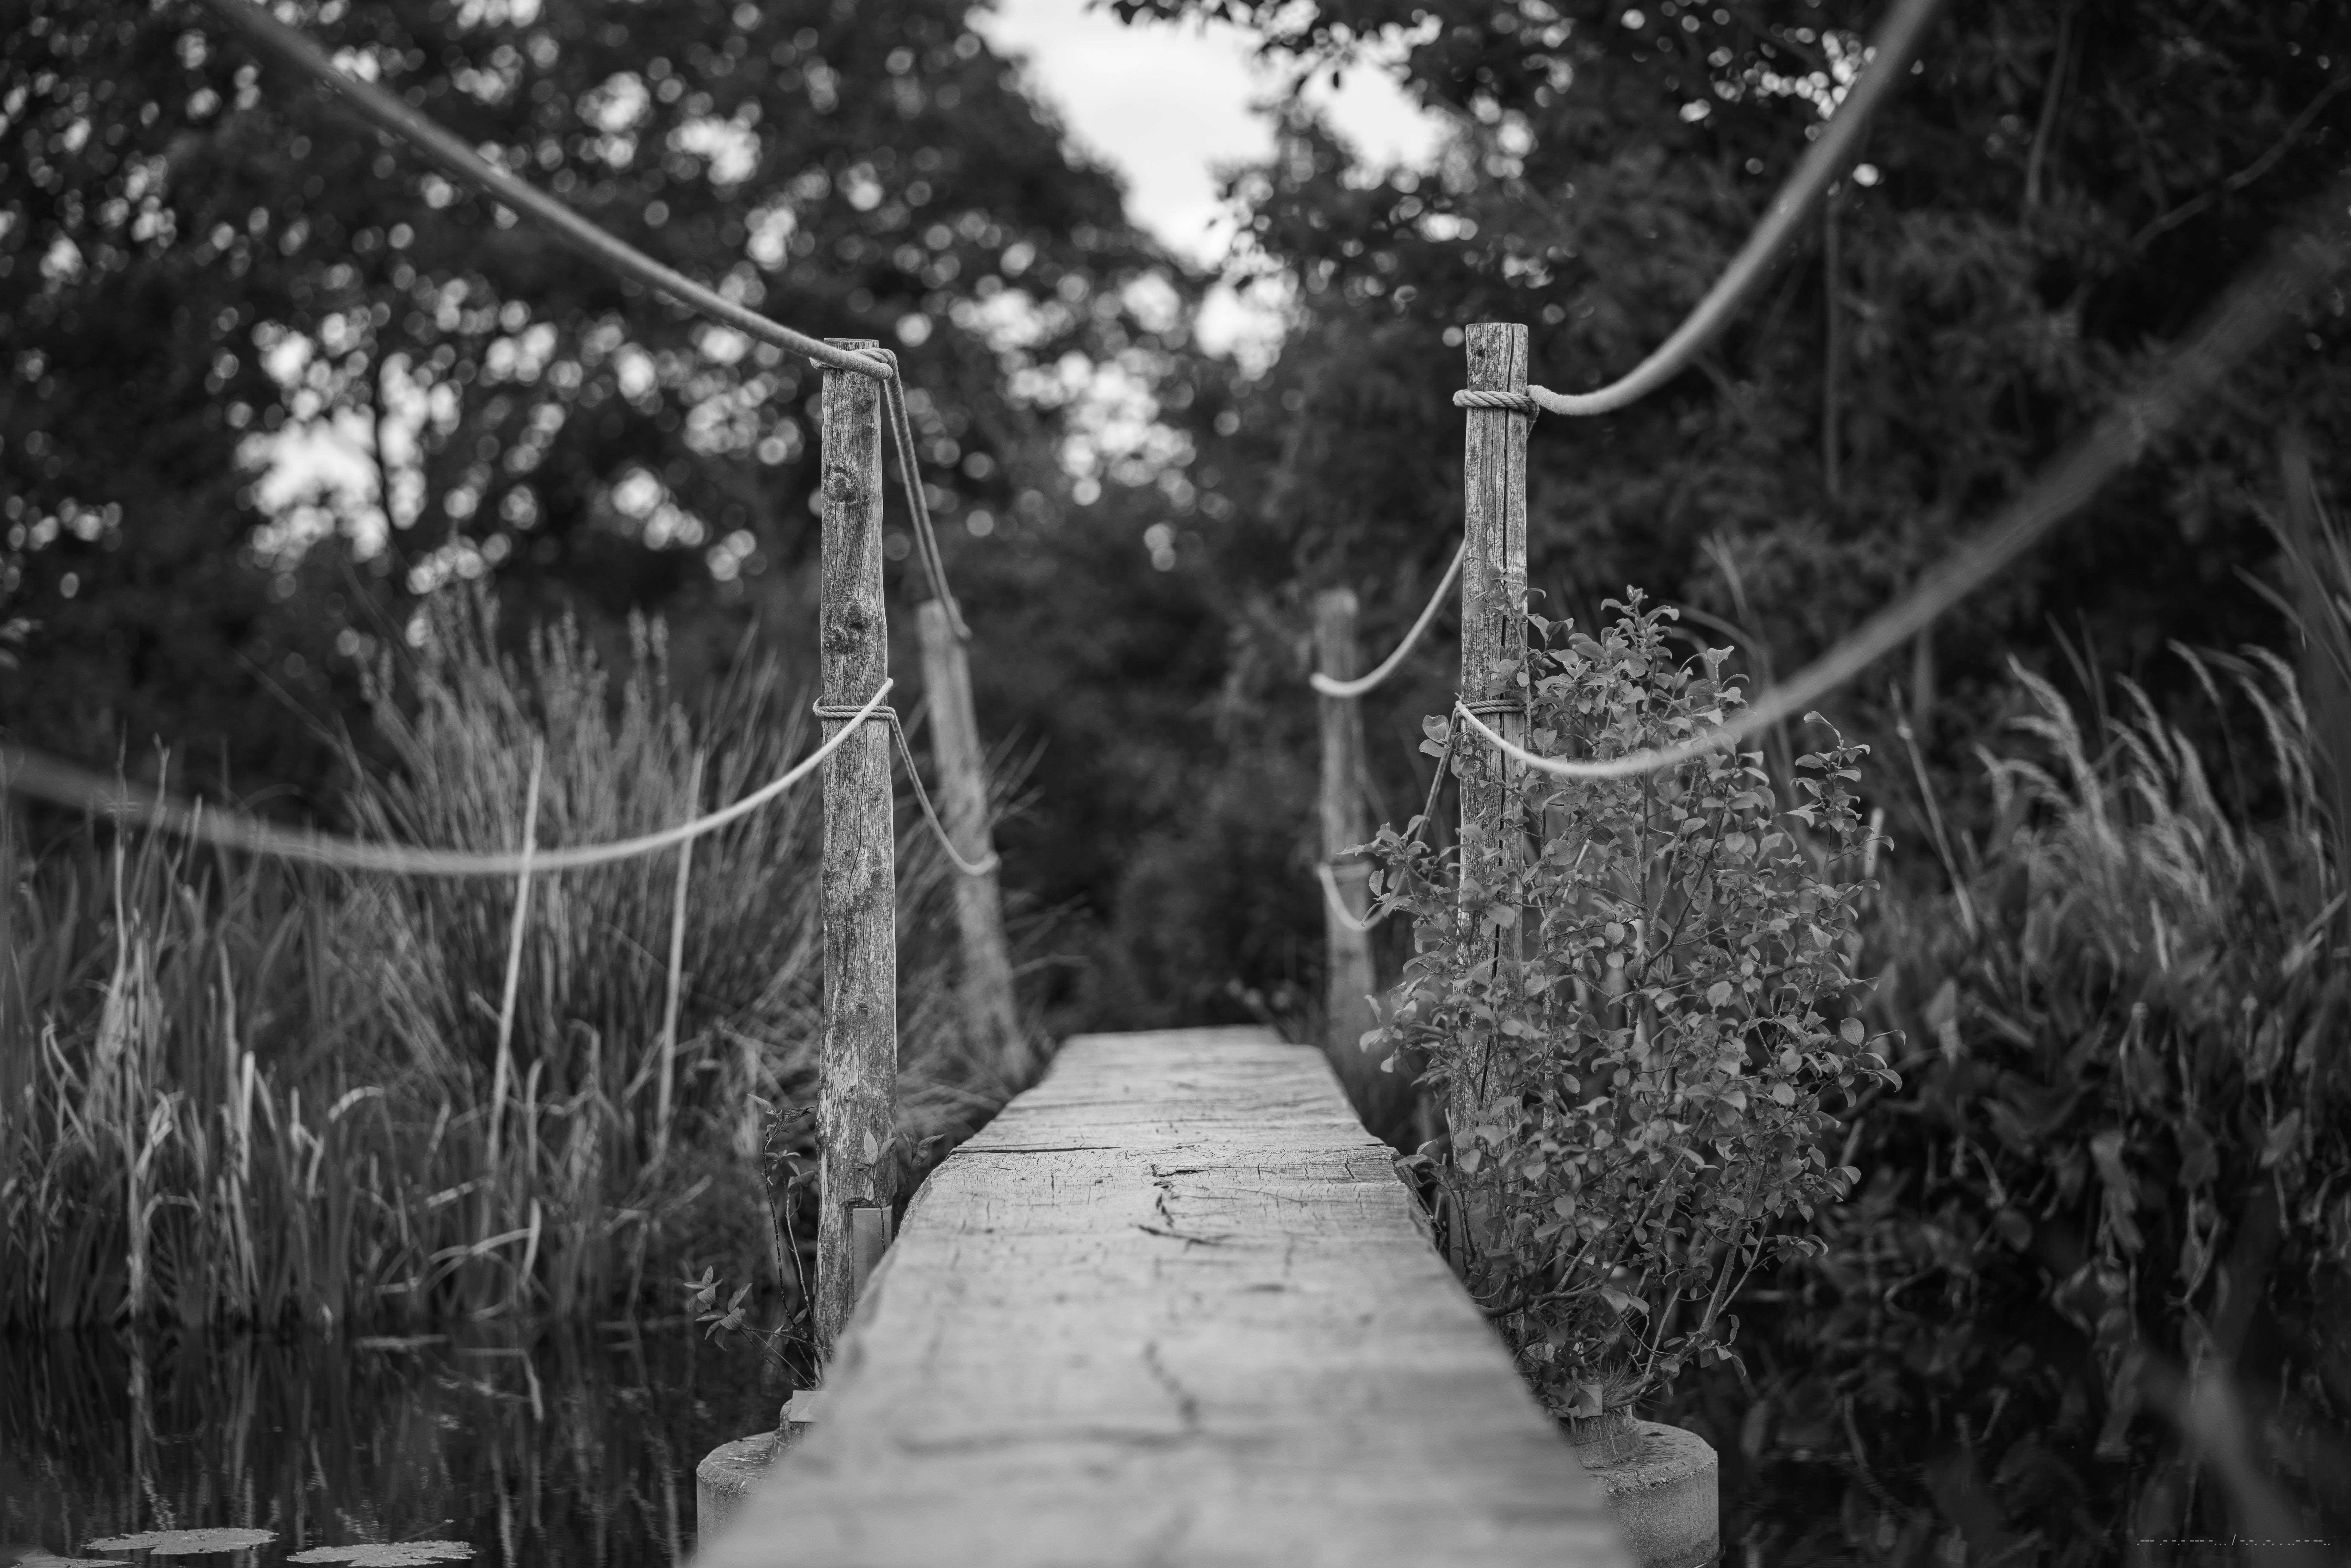 grayscale photo of a wooden hanging bridge